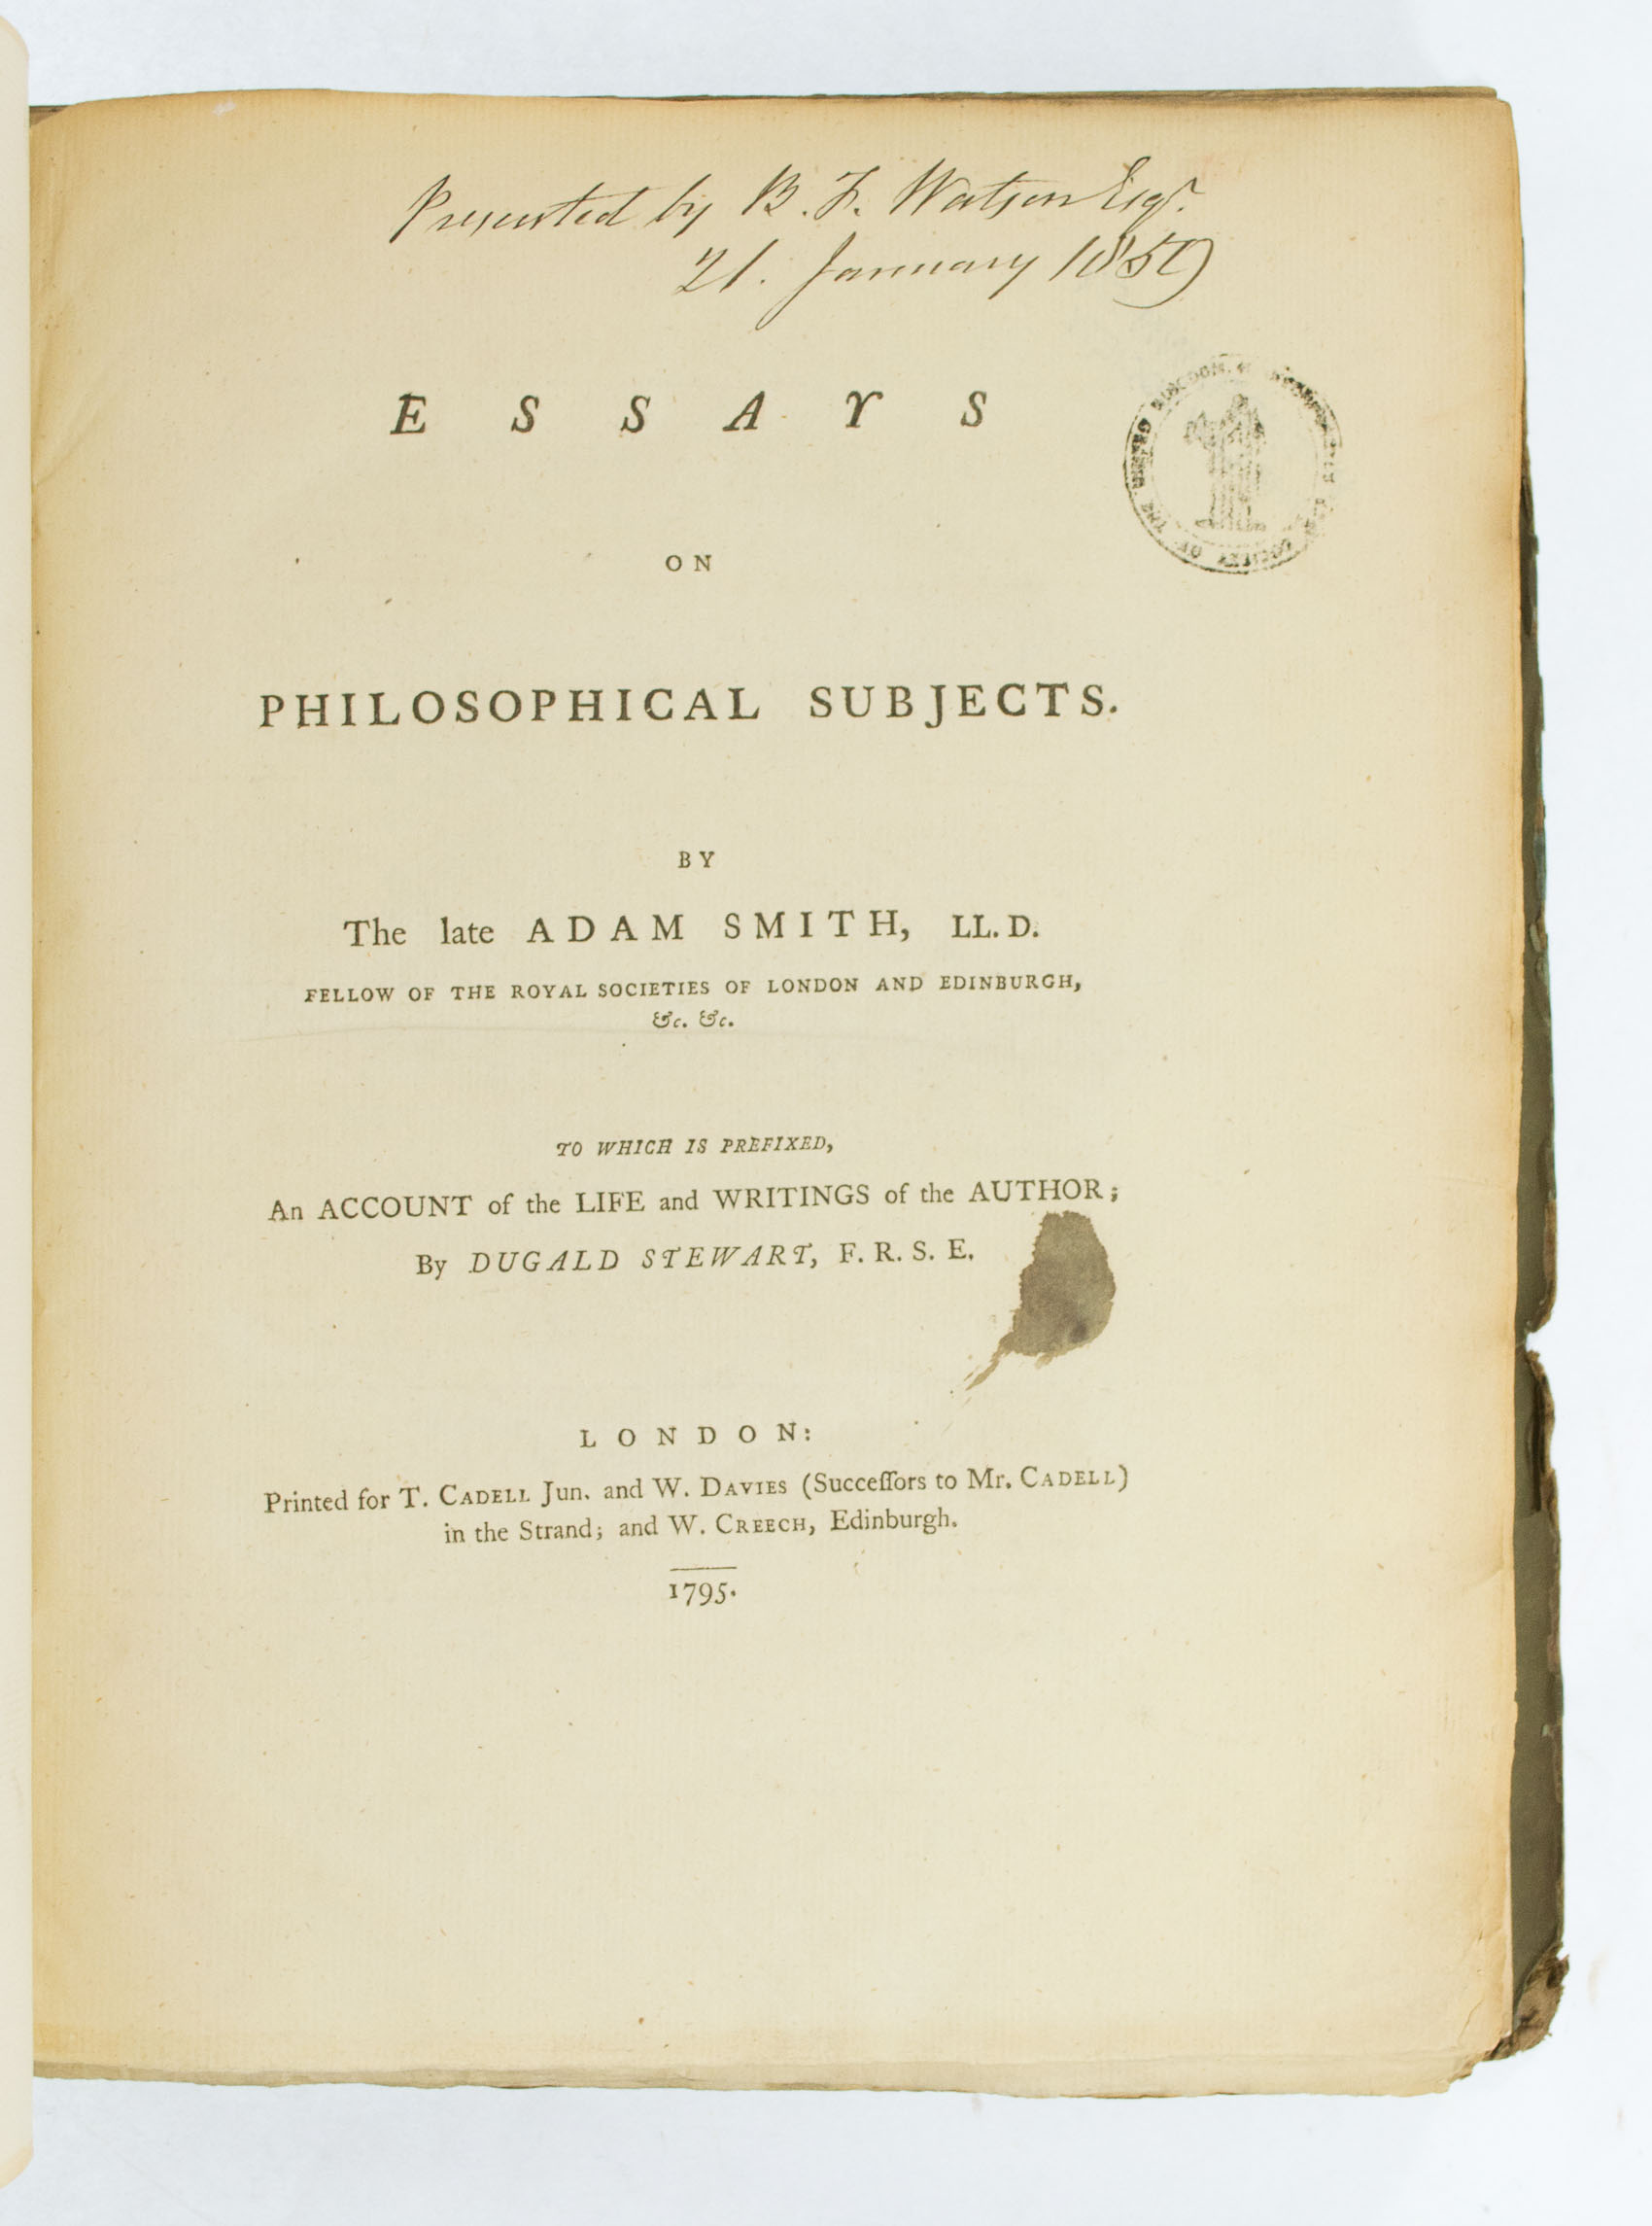 adam smith essay on astronomy Essays on philosophical subjects (annotated) - kindle edition by adam smith download it once and read it on your kindle device, pc, phones or tablets use features like bookmarks, note taking and highlighting while reading essays on philosophical subjects (annotated.